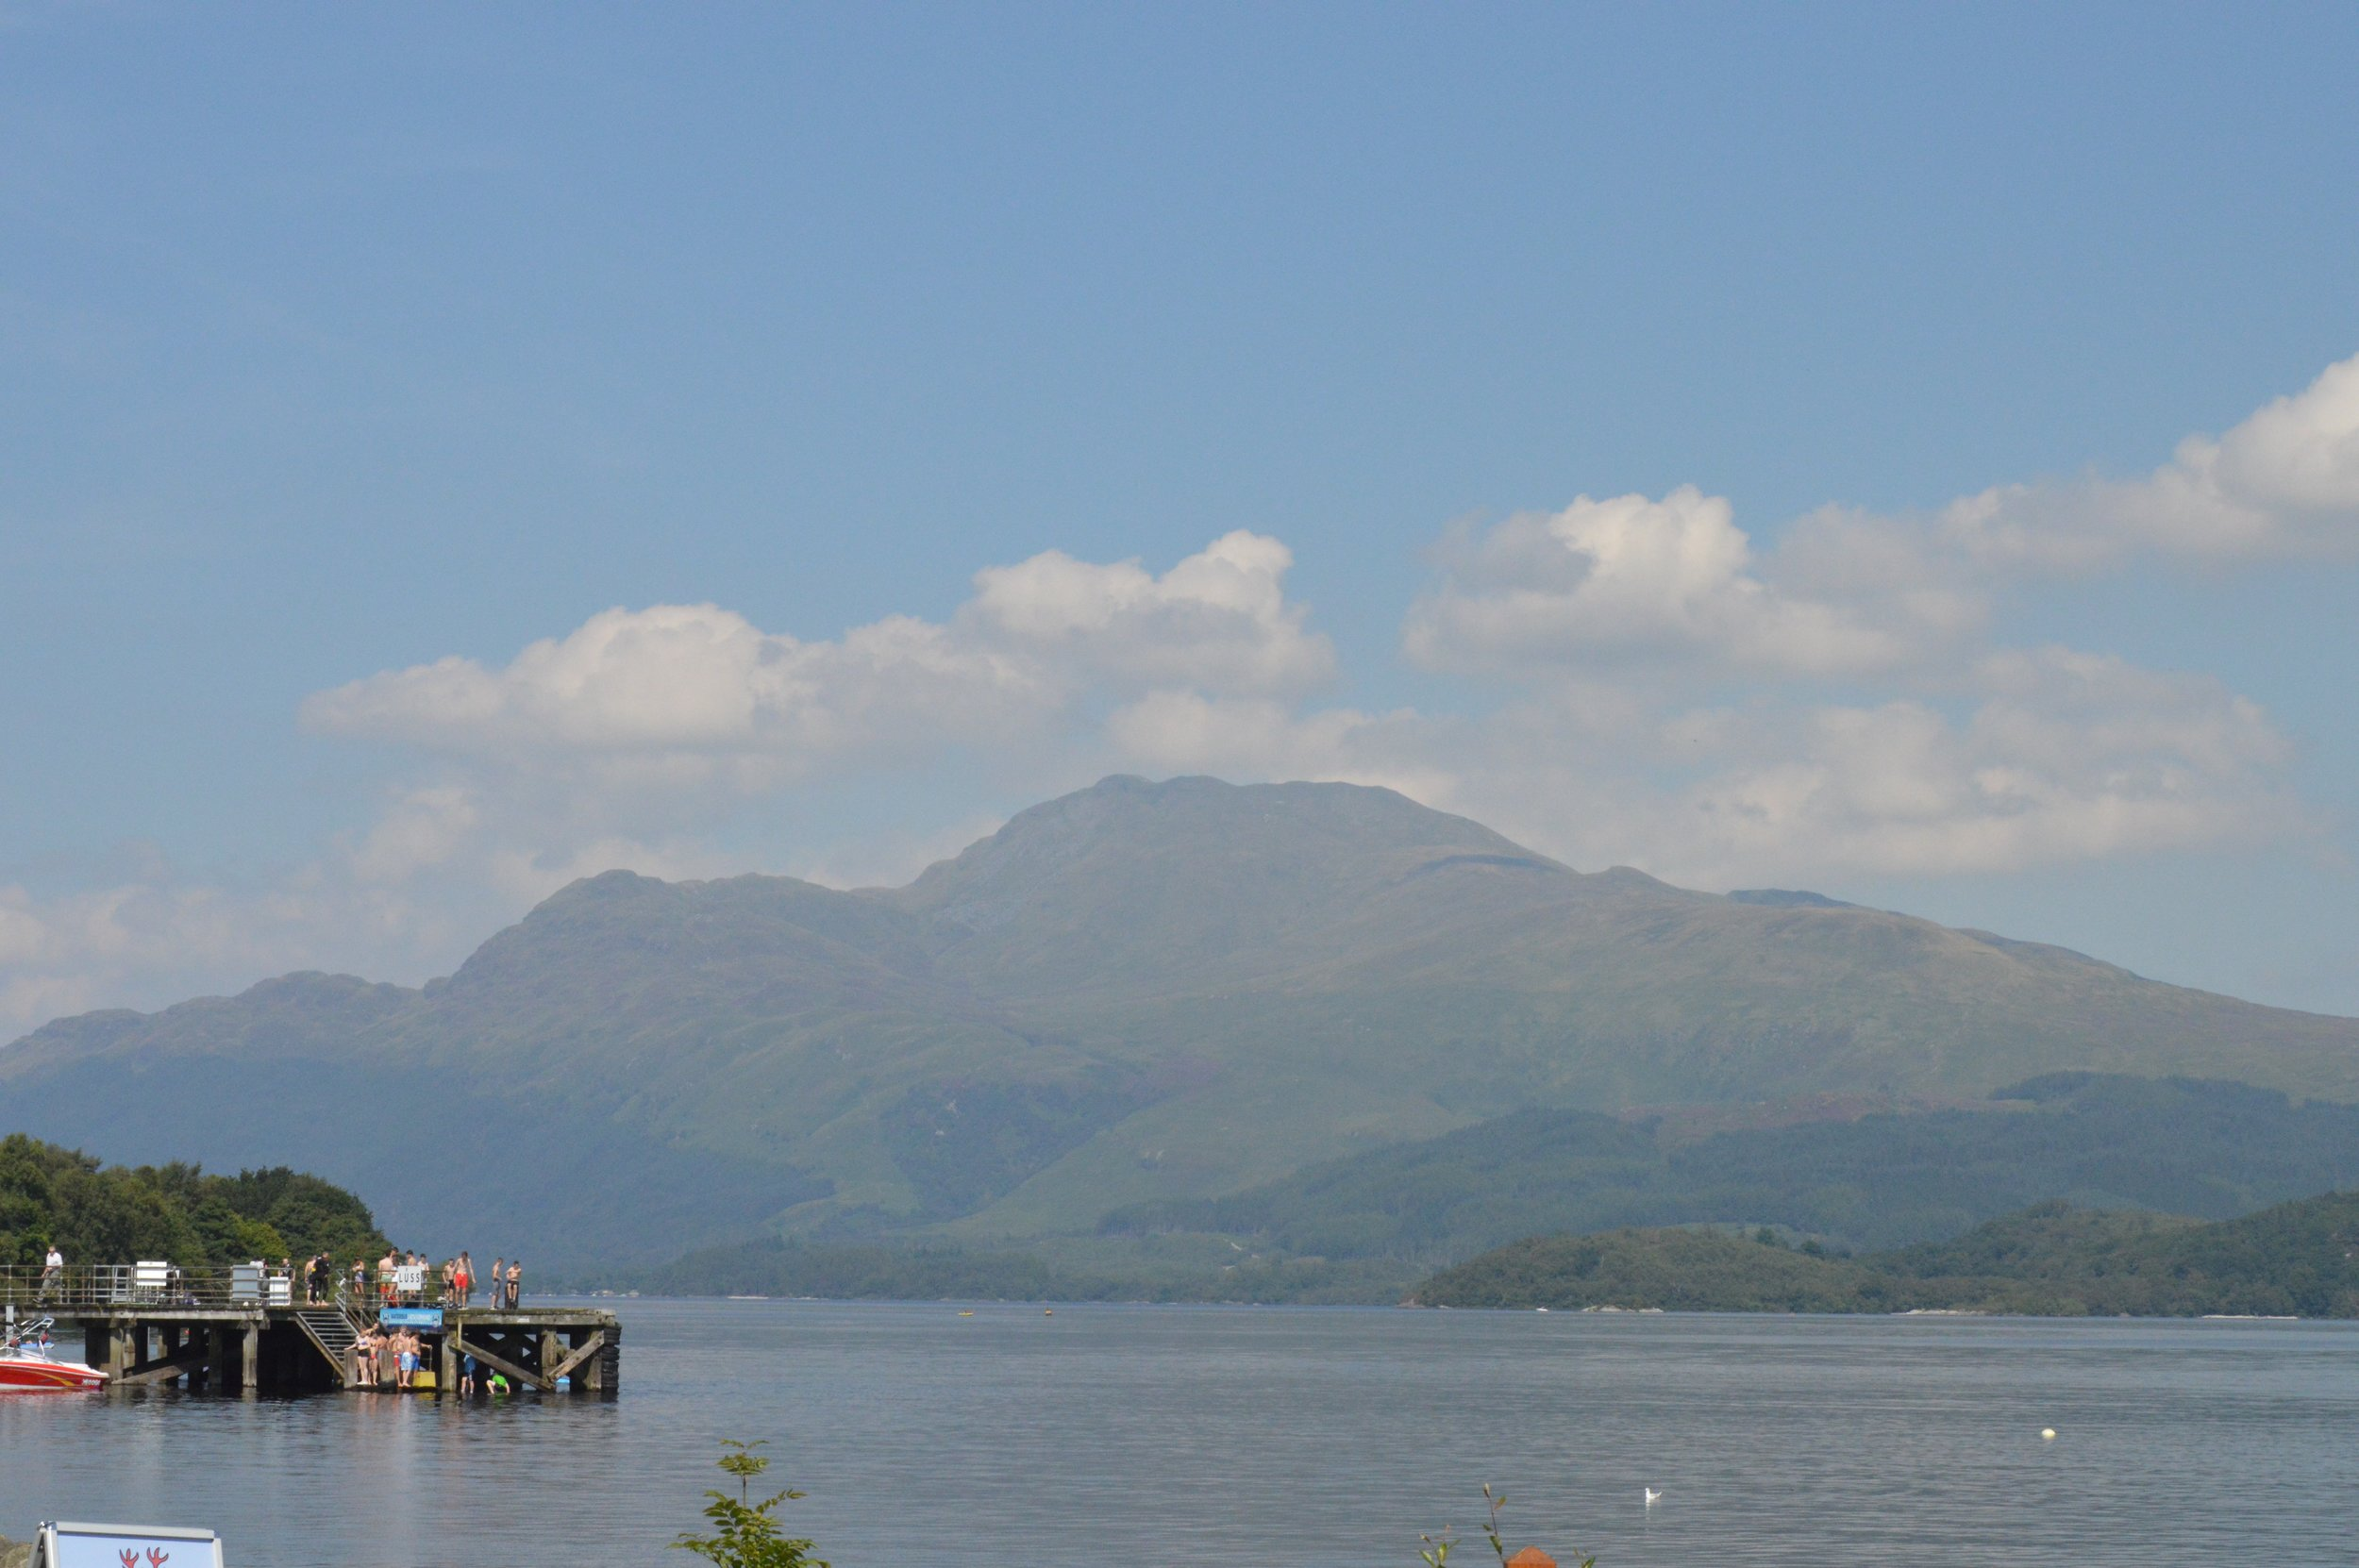 The view from the small beach at Luss